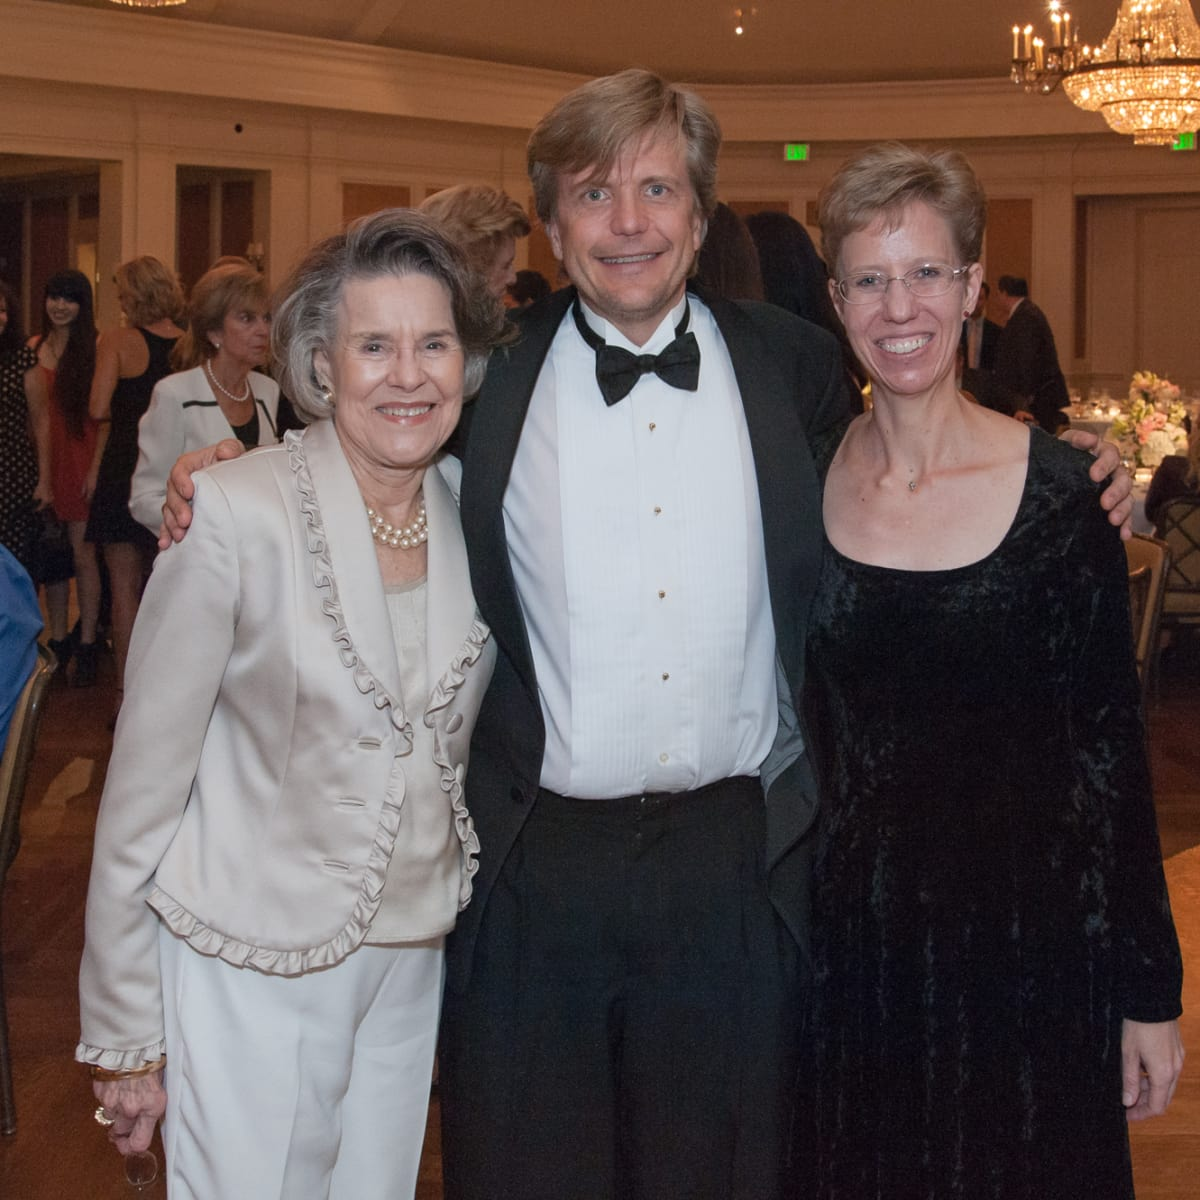 Houston, River Oaks Chamber Orchestra Gala, October 2015, Suzanne Lyons, Erik Grantor and Tammy Linn